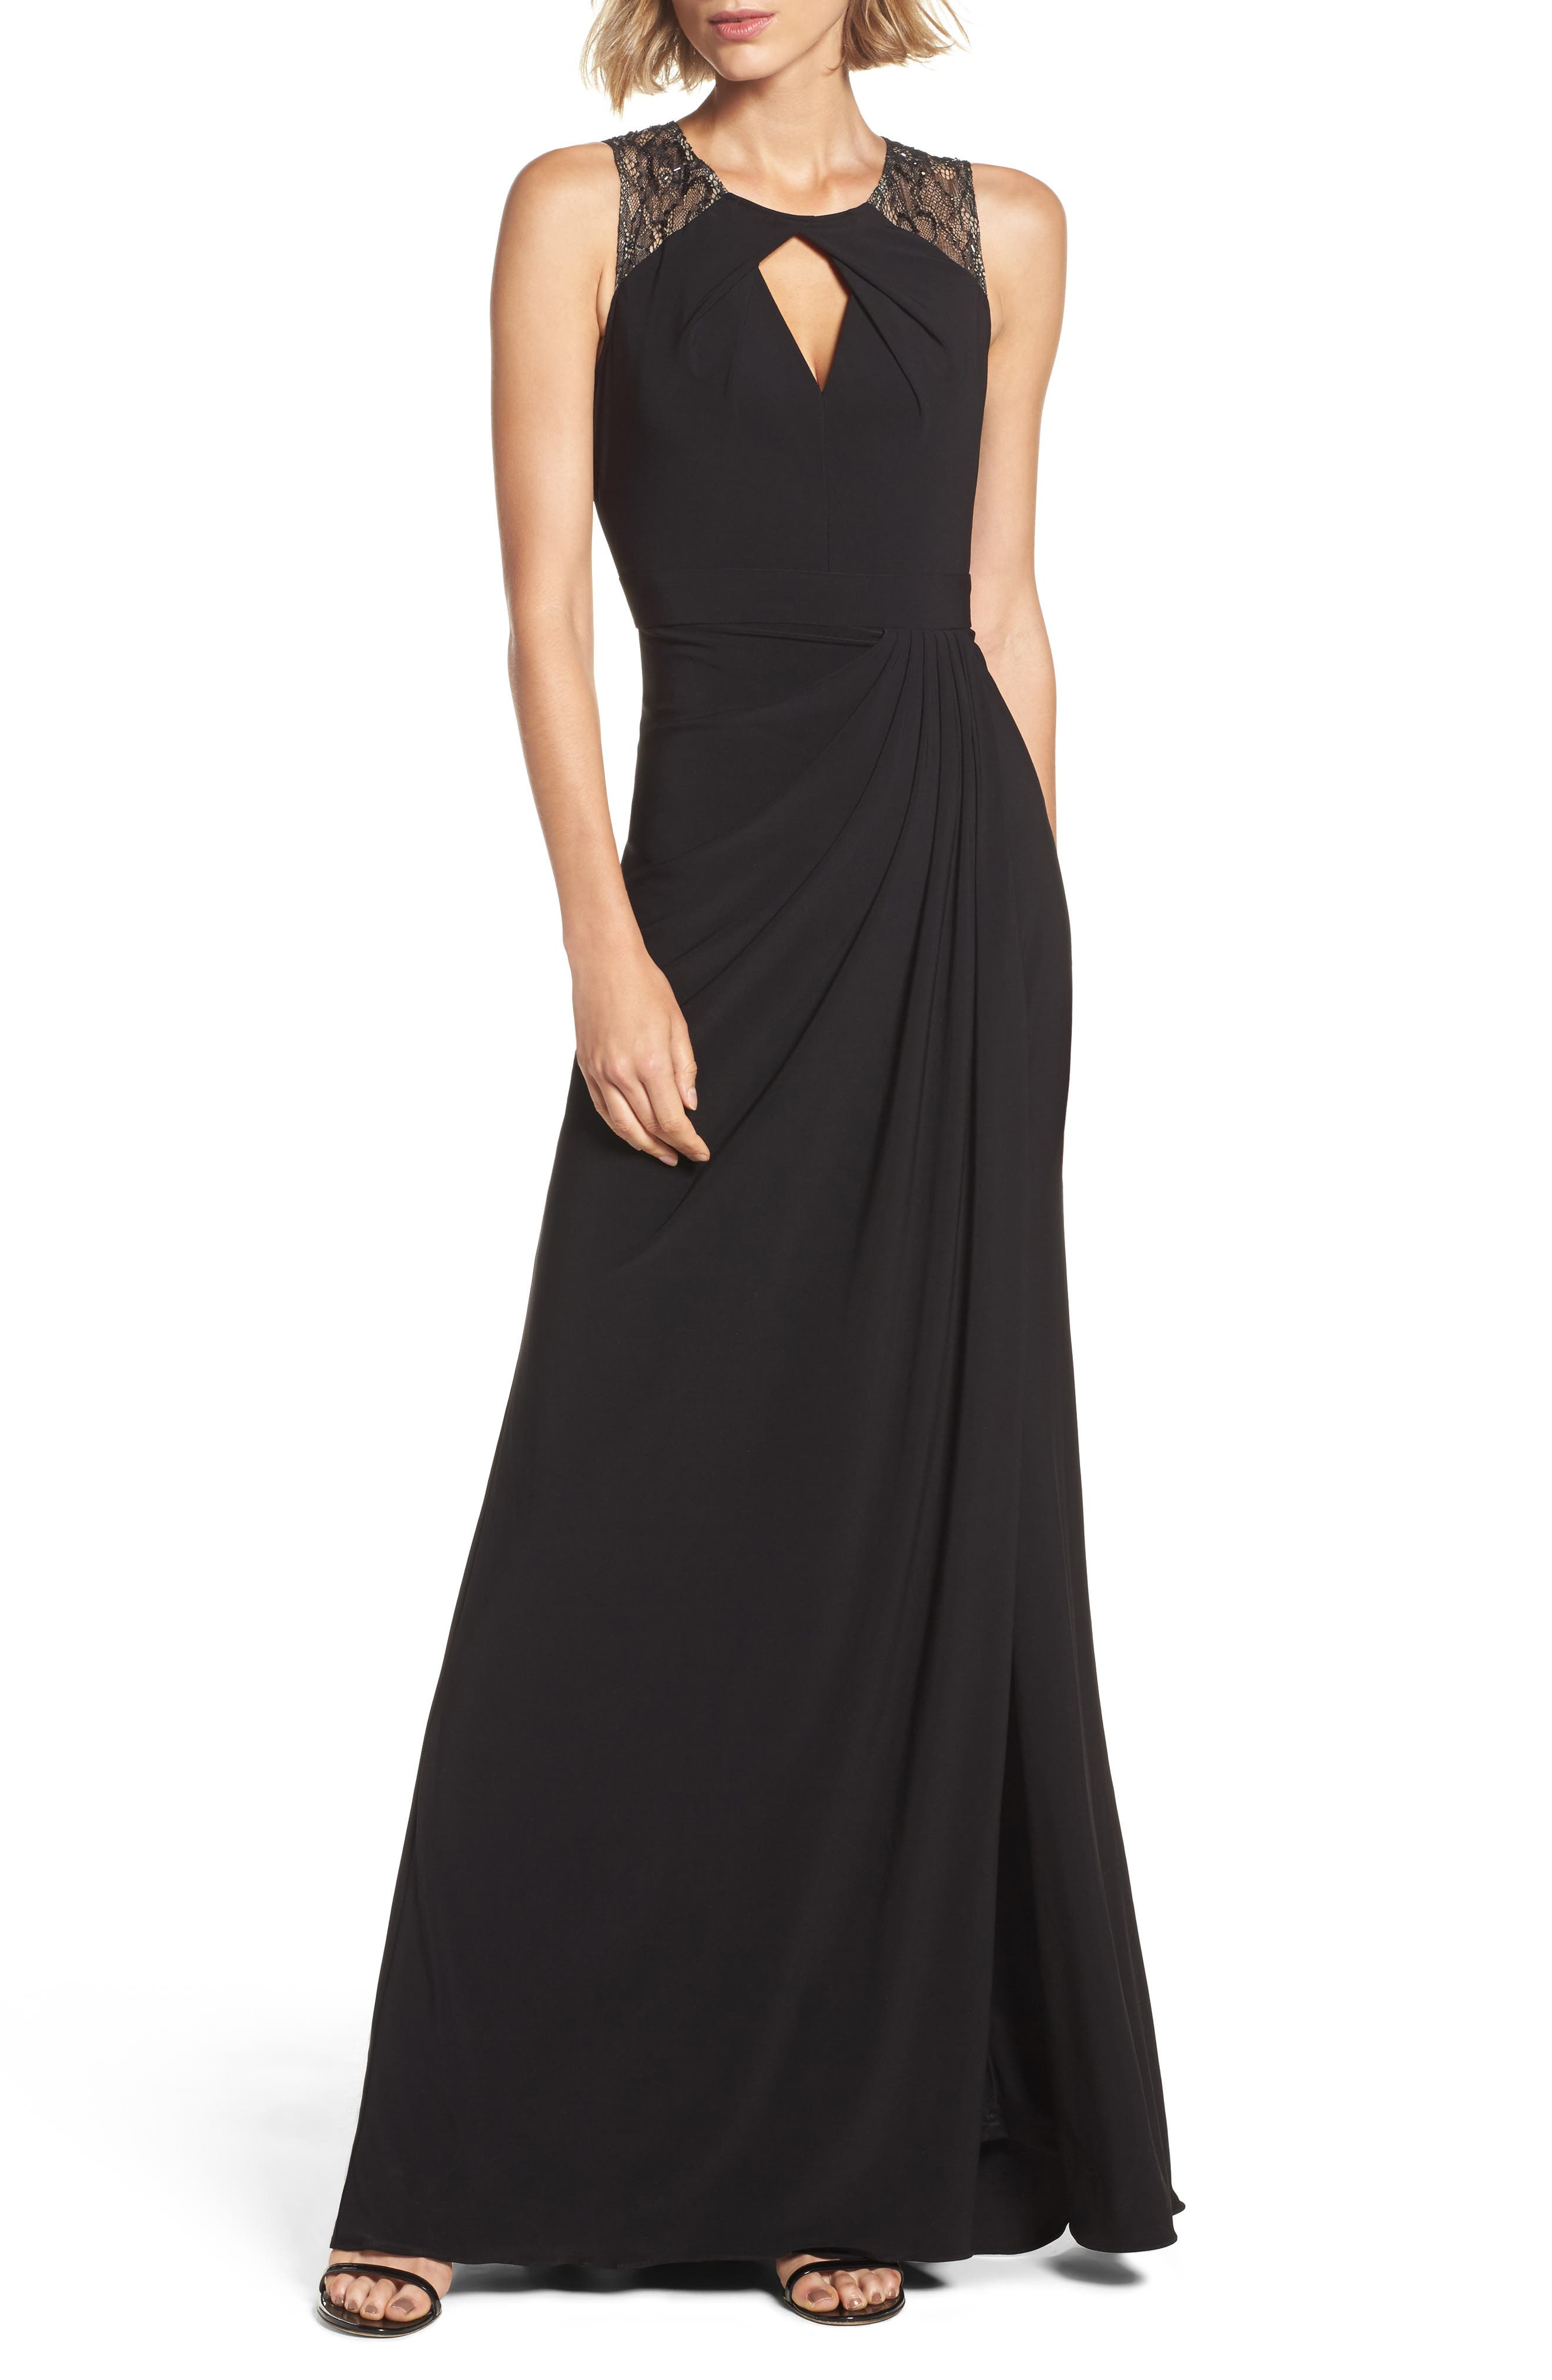 Main Image - Adrianna Papell Lace Shoulder Jersey Gown (Regular & Petite)